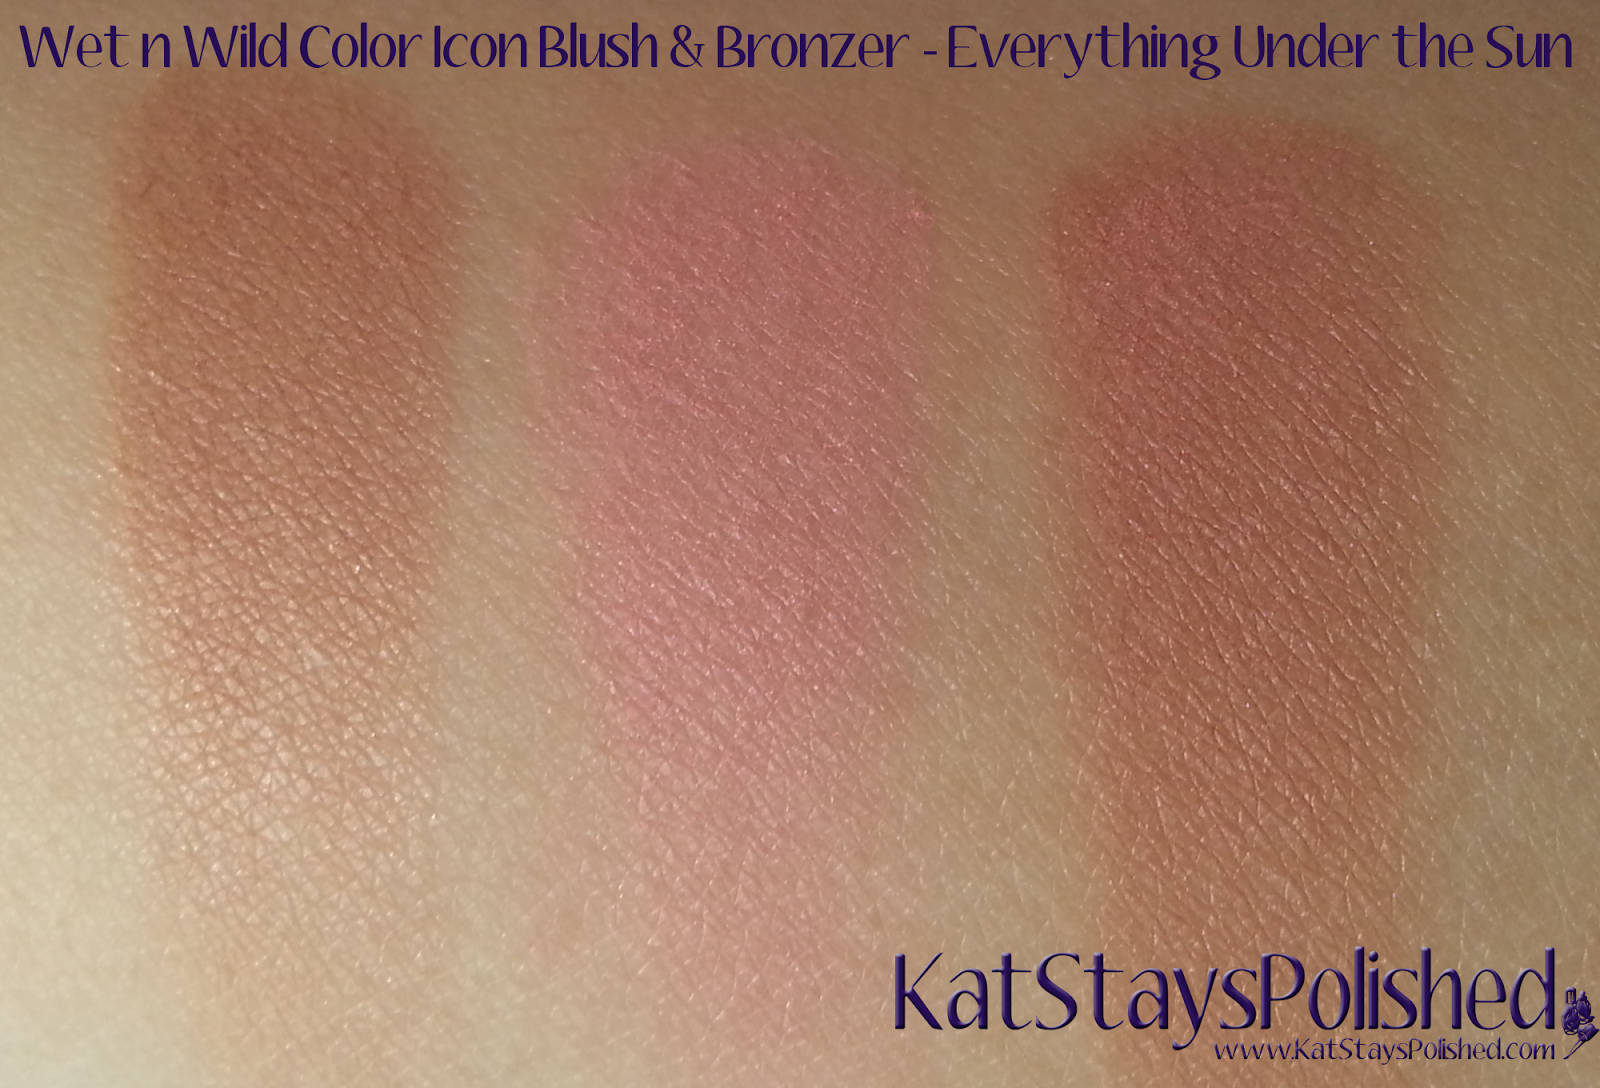 Wet n Wild ColorIcon Bronzer & Blush - Summer 2014 - Everything Under the Sun | Kat Stays Polished